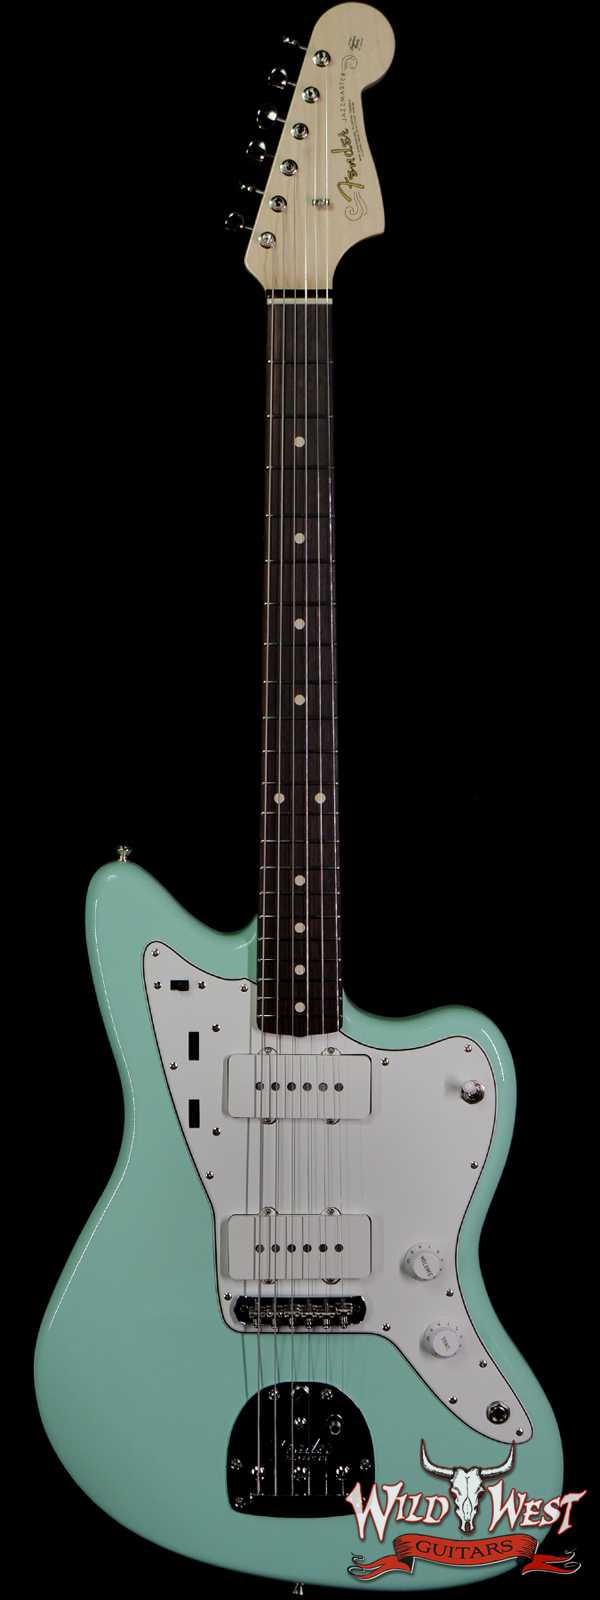 Fender Custom Shop Envy Collection 1965 Jazzmaster NOS Surf Green Apprentice Built By Nick Saccon(One of A Kind)